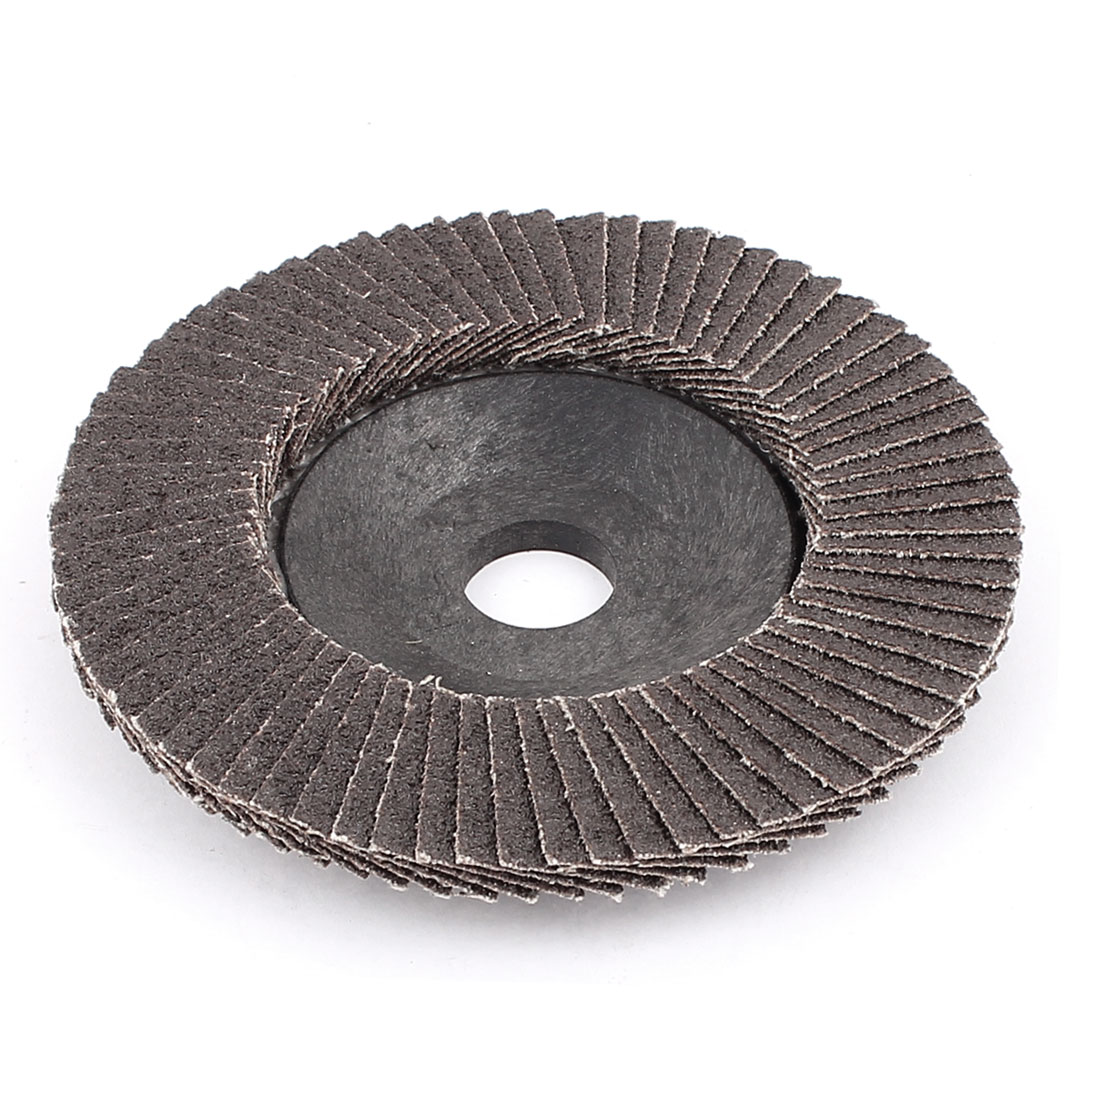 "4"" 100mm Abrasives Flap Sanding Grinding Discs Wheel for Angle Grinder"